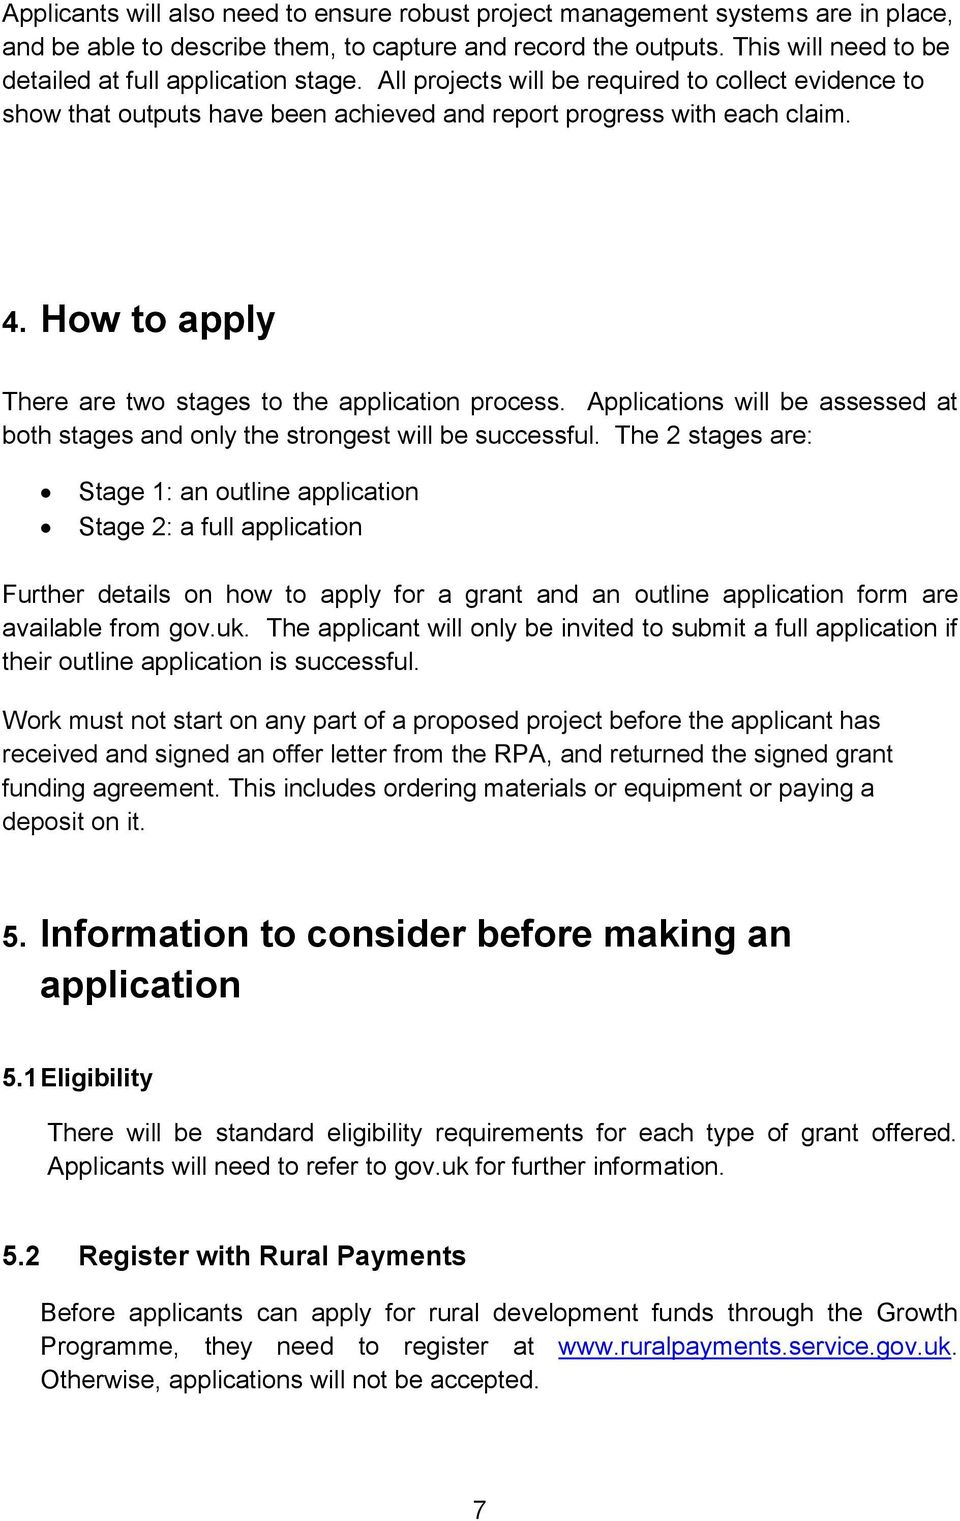 How to apply There are two stages to the application process. Applications will be assessed at both stages and only the strongest will be successful.